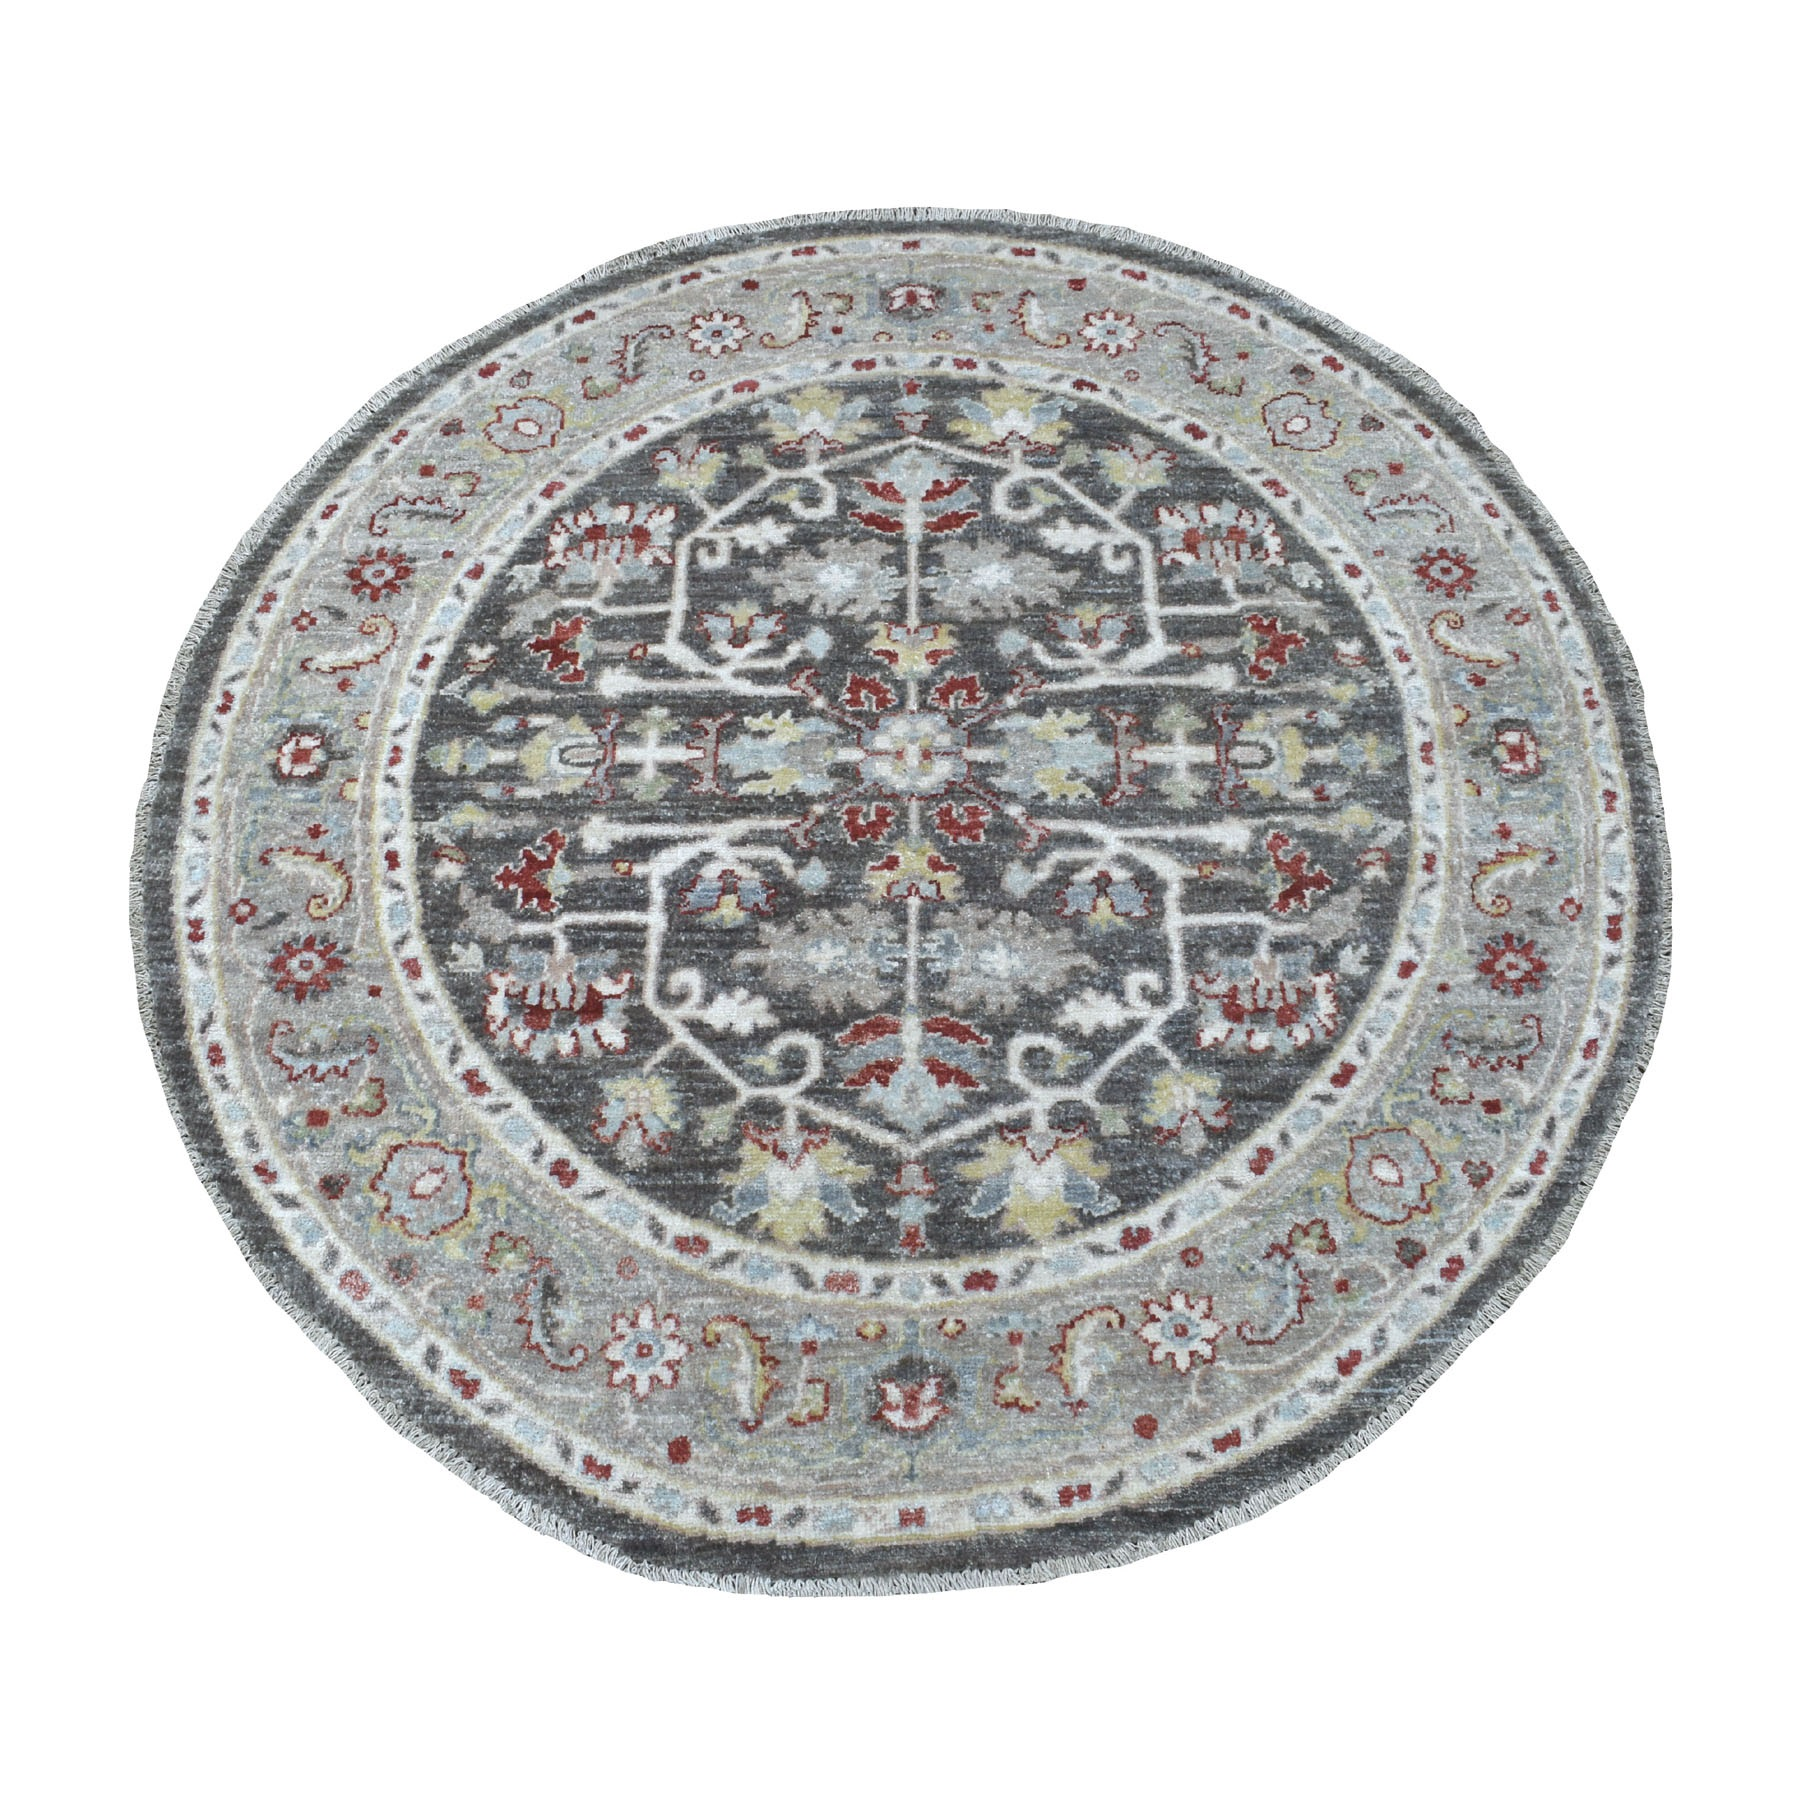 4'x4' Dark Gray Peshawar With Heriz Design Shiny Wool Round Hand Knotted Oriental Rug